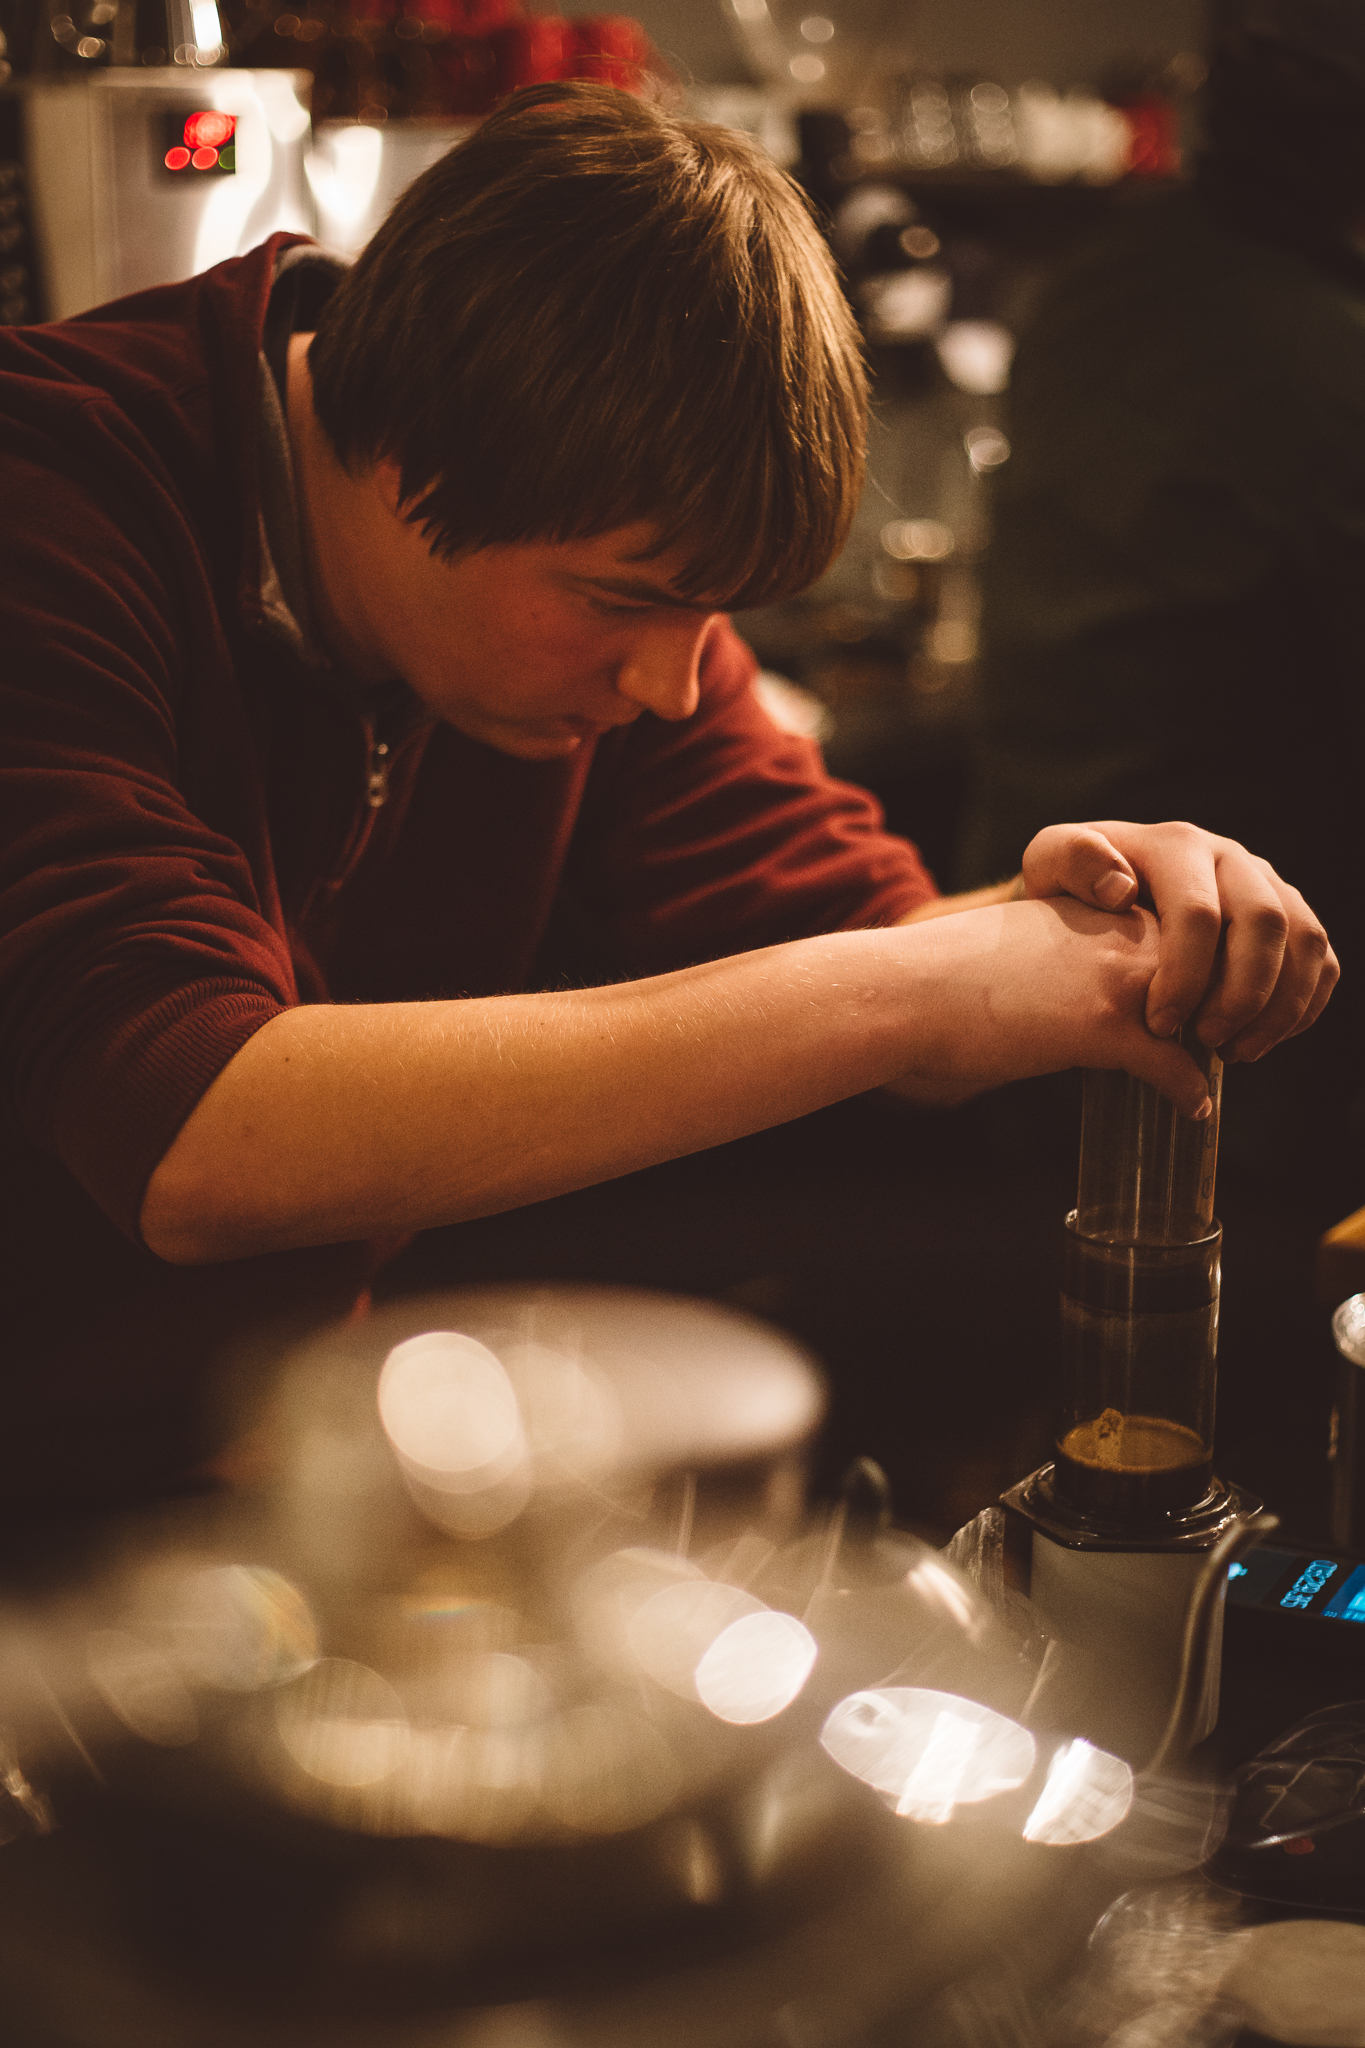 Dmitriy plunges his Aeropress in the final round